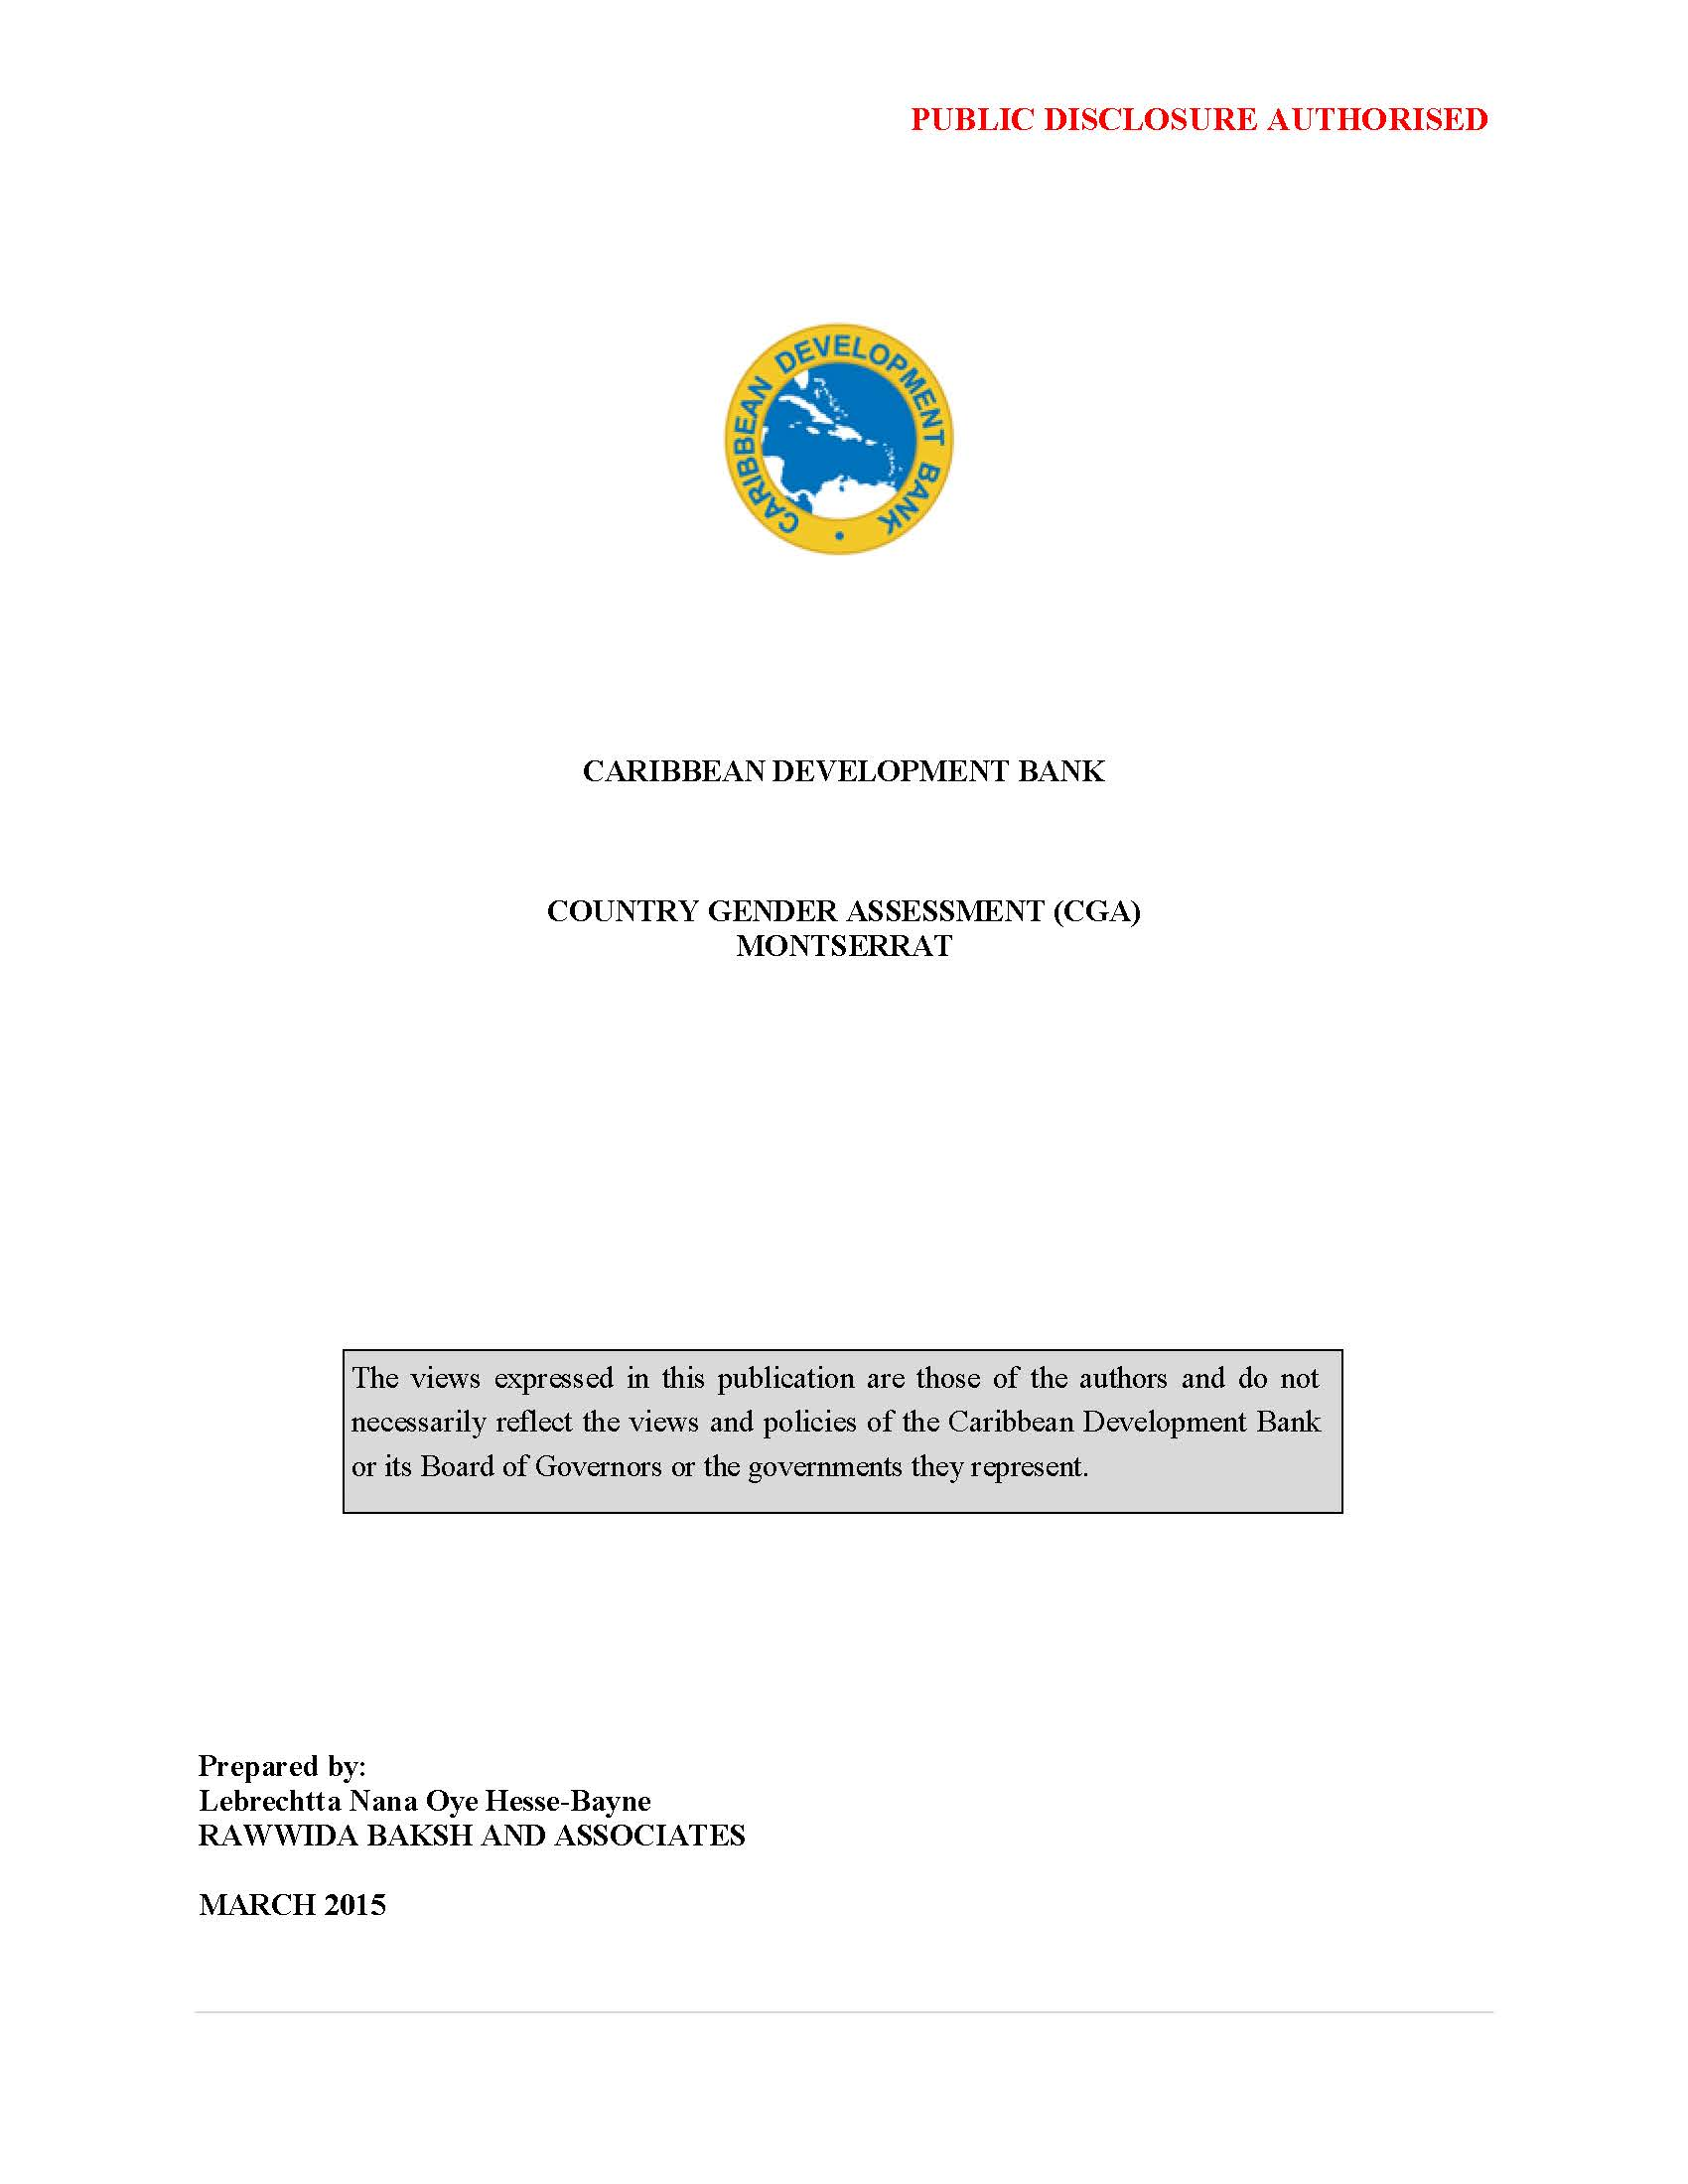 text-based cover featuring document title against a white backdrop